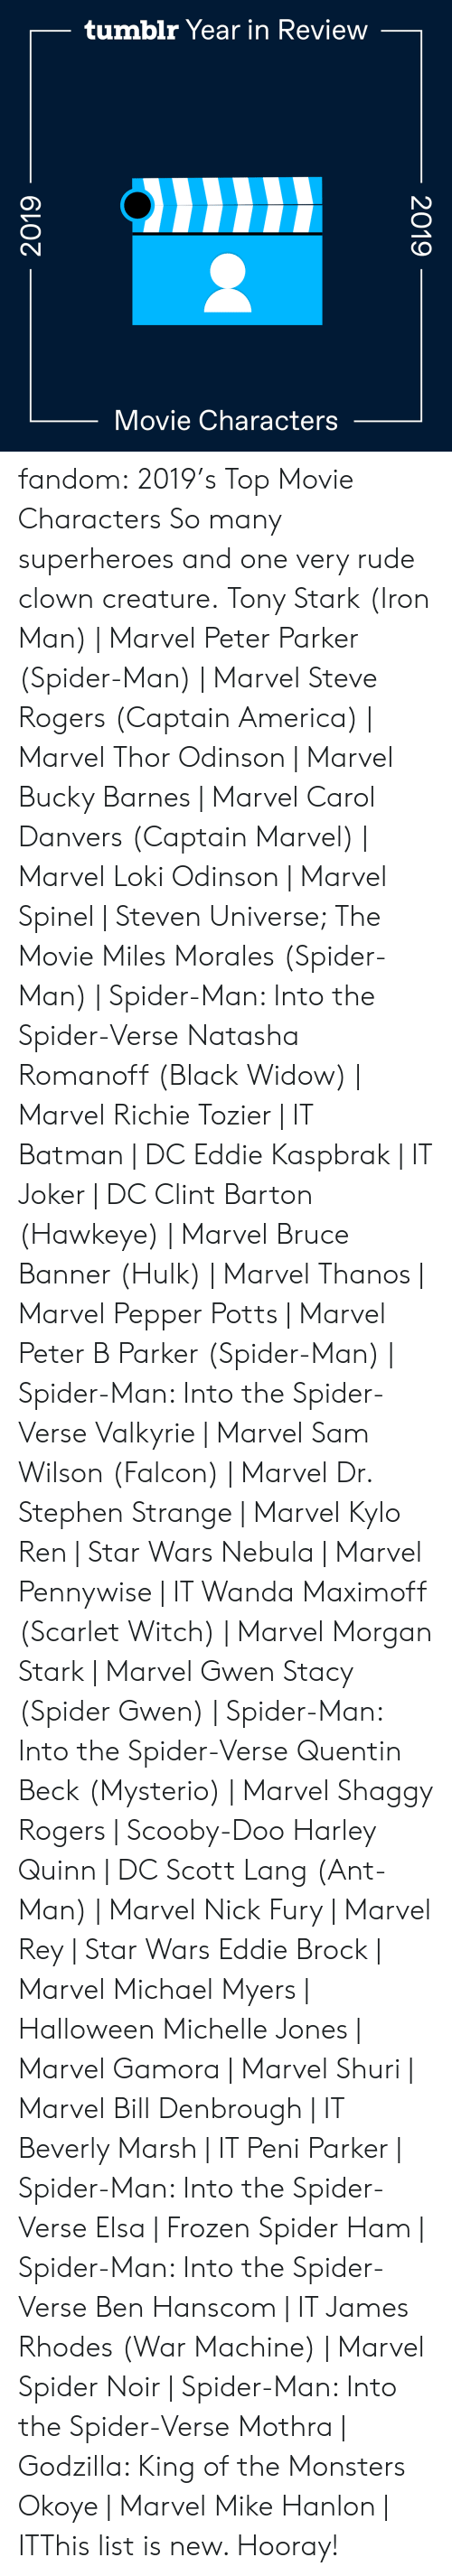 clown: tumblr Year in Review  Movie Characters  2019  2019 fandom:  2019's Top Movie Characters  So many superheroes and one very rude clown creature.  Tony Stark (Iron Man) | Marvel  Peter Parker (Spider-Man) | Marvel  Steve Rogers (Captain America) | Marvel  Thor Odinson | Marvel  Bucky Barnes | Marvel  Carol Danvers (Captain Marvel) | Marvel  Loki Odinson | Marvel  Spinel | Steven Universe; The Movie  Miles Morales (Spider-Man) | Spider-Man: Into the Spider-Verse  Natasha Romanoff (Black Widow) | Marvel  Richie Tozier | IT  Batman | DC  Eddie Kaspbrak | IT  Joker | DC  Clint Barton (Hawkeye) | Marvel  Bruce Banner (Hulk) | Marvel  Thanos | Marvel  Pepper Potts | Marvel  Peter B Parker (Spider-Man) | Spider-Man: Into the Spider-Verse  Valkyrie | Marvel  Sam Wilson (Falcon) | Marvel  Dr. Stephen Strange | Marvel  Kylo Ren | Star Wars  Nebula | Marvel  Pennywise | IT  Wanda Maximoff (Scarlet Witch) | Marvel  Morgan Stark | Marvel  Gwen Stacy (Spider Gwen) | Spider-Man: Into the Spider-Verse  Quentin Beck (Mysterio) | Marvel  Shaggy Rogers | Scooby-Doo  Harley Quinn | DC  Scott Lang (Ant-Man) | Marvel  Nick Fury | Marvel  Rey | Star Wars  Eddie Brock | Marvel  Michael Myers | Halloween  Michelle Jones | Marvel  Gamora | Marvel  Shuri | Marvel  Bill Denbrough | IT  Beverly Marsh | IT  Peni Parker | Spider-Man: Into the Spider-Verse  Elsa | Frozen  Spider Ham | Spider-Man: Into the Spider-Verse  Ben Hanscom | IT  James Rhodes (War Machine) | Marvel  Spider Noir | Spider-Man: Into the Spider-Verse  Mothra | Godzilla: King of the Monsters  Okoye | Marvel Mike Hanlon | ITThis list is new. Hooray!